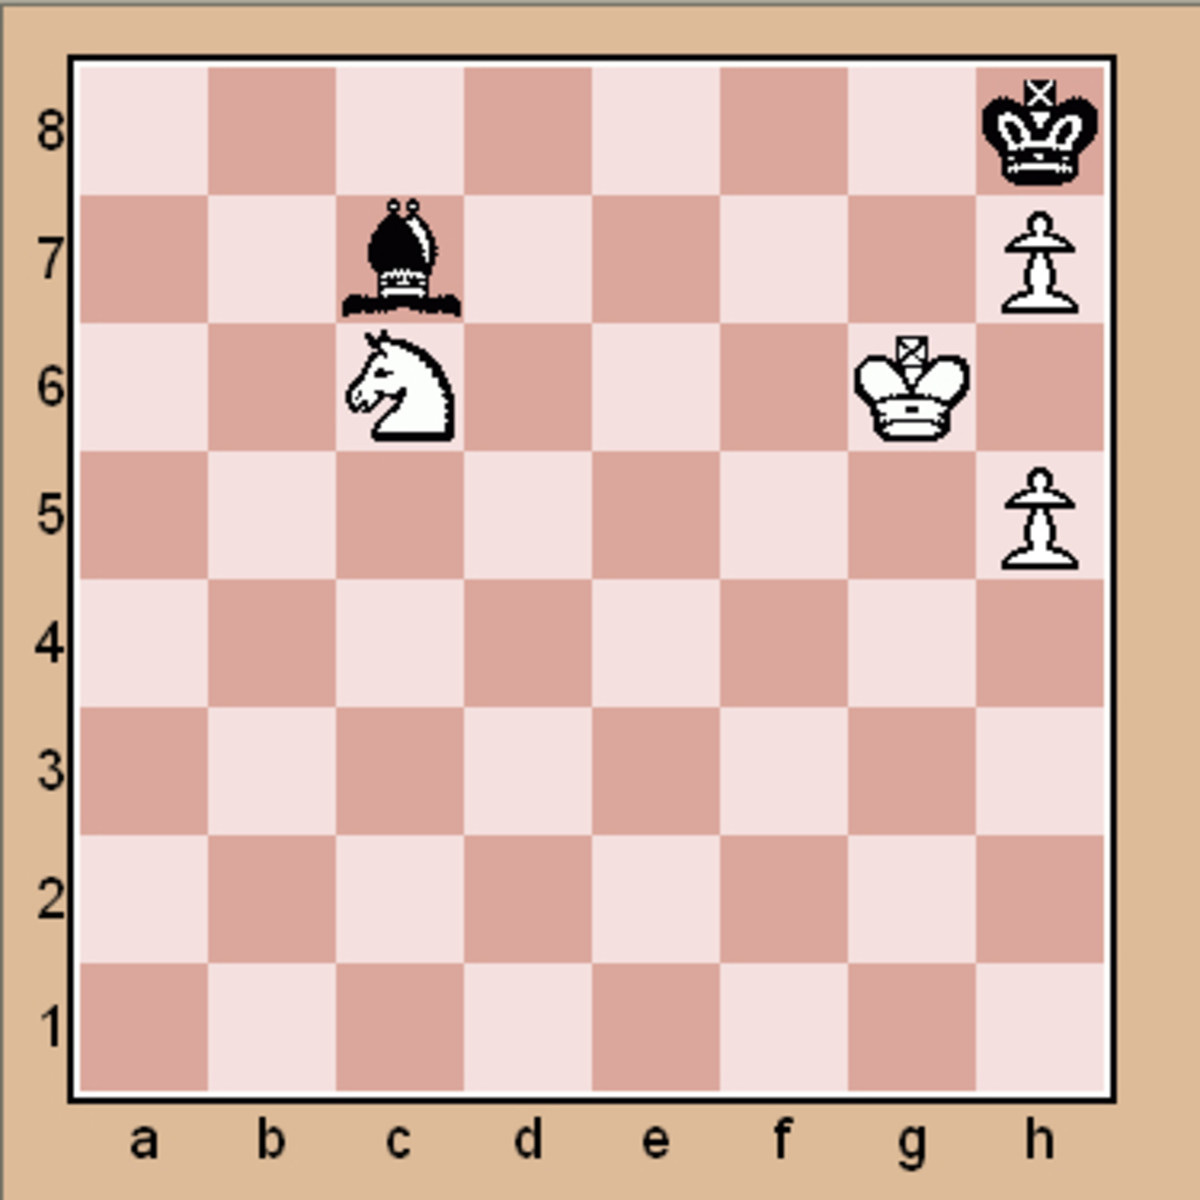 Advanced chess tactics puzzle. (Click to enlarge)